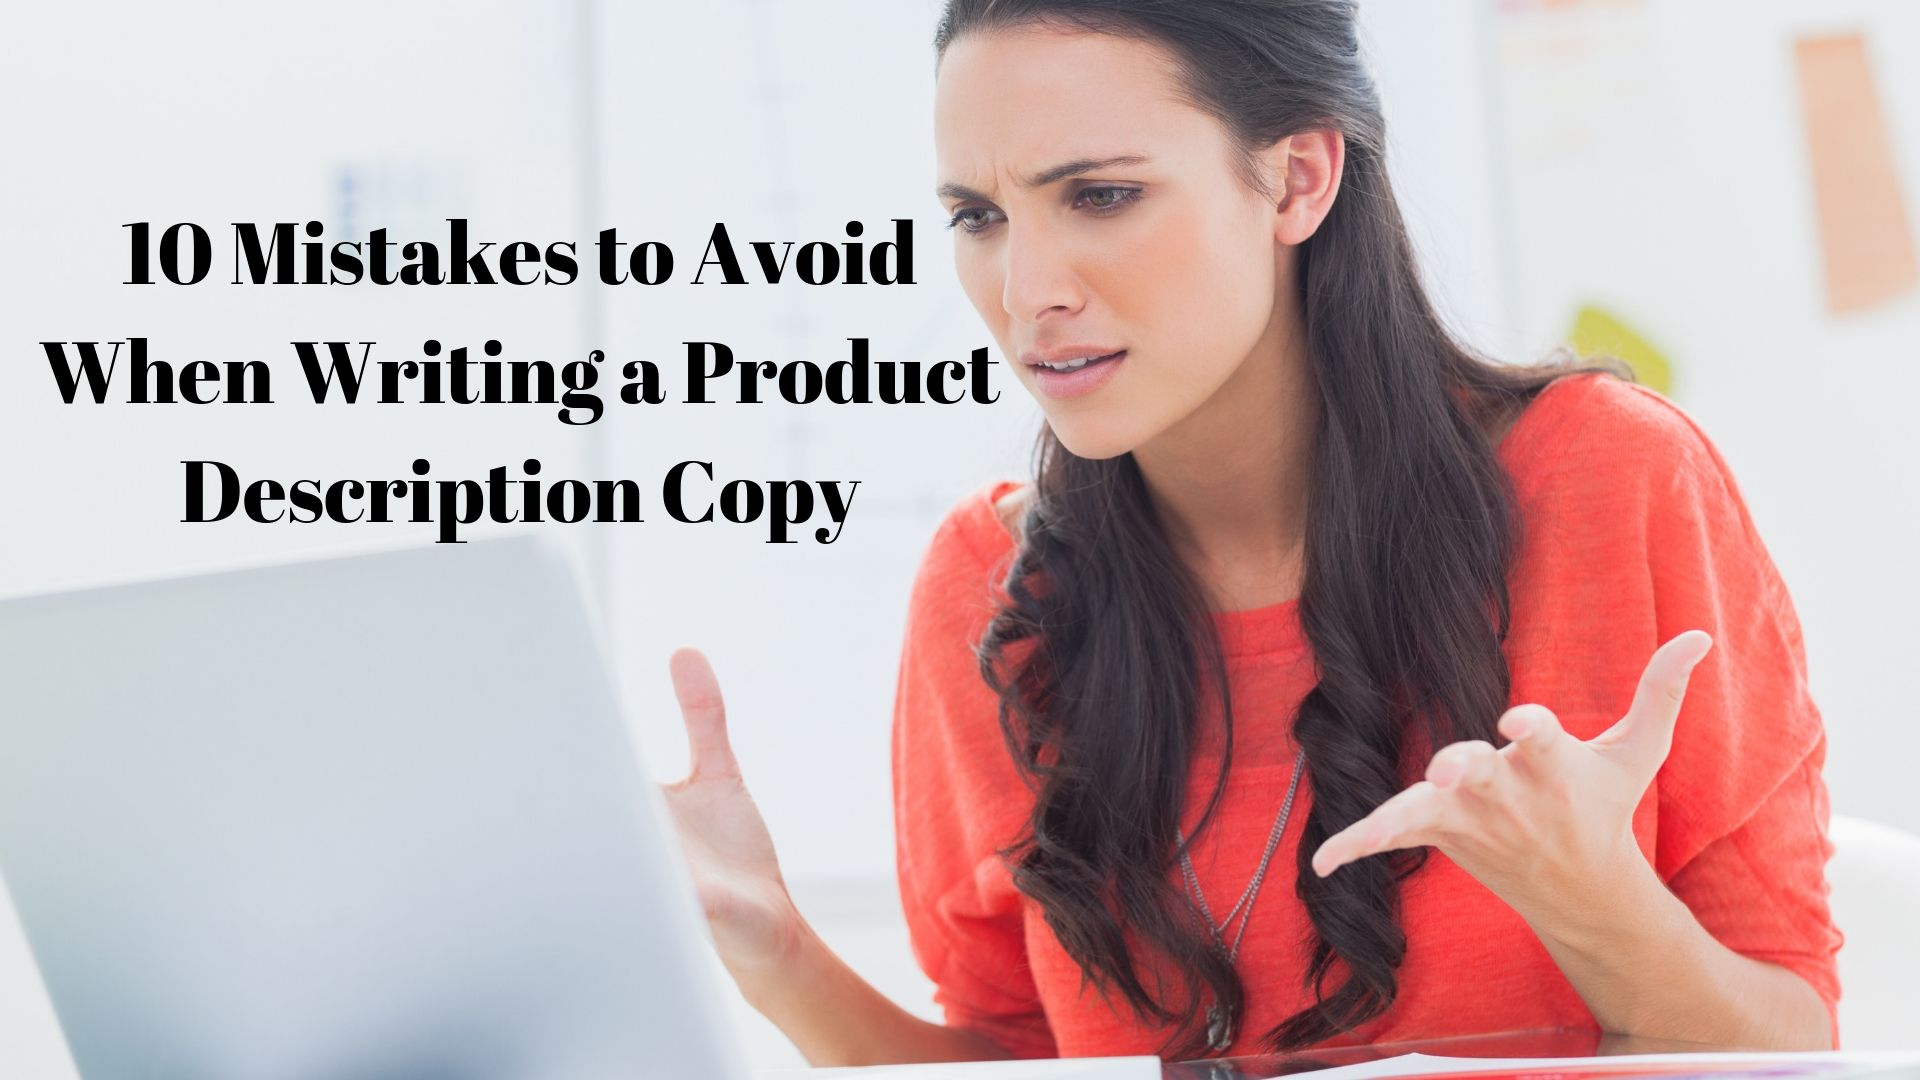 10 Mistakes to Avoid When Writing A Product Description Copy